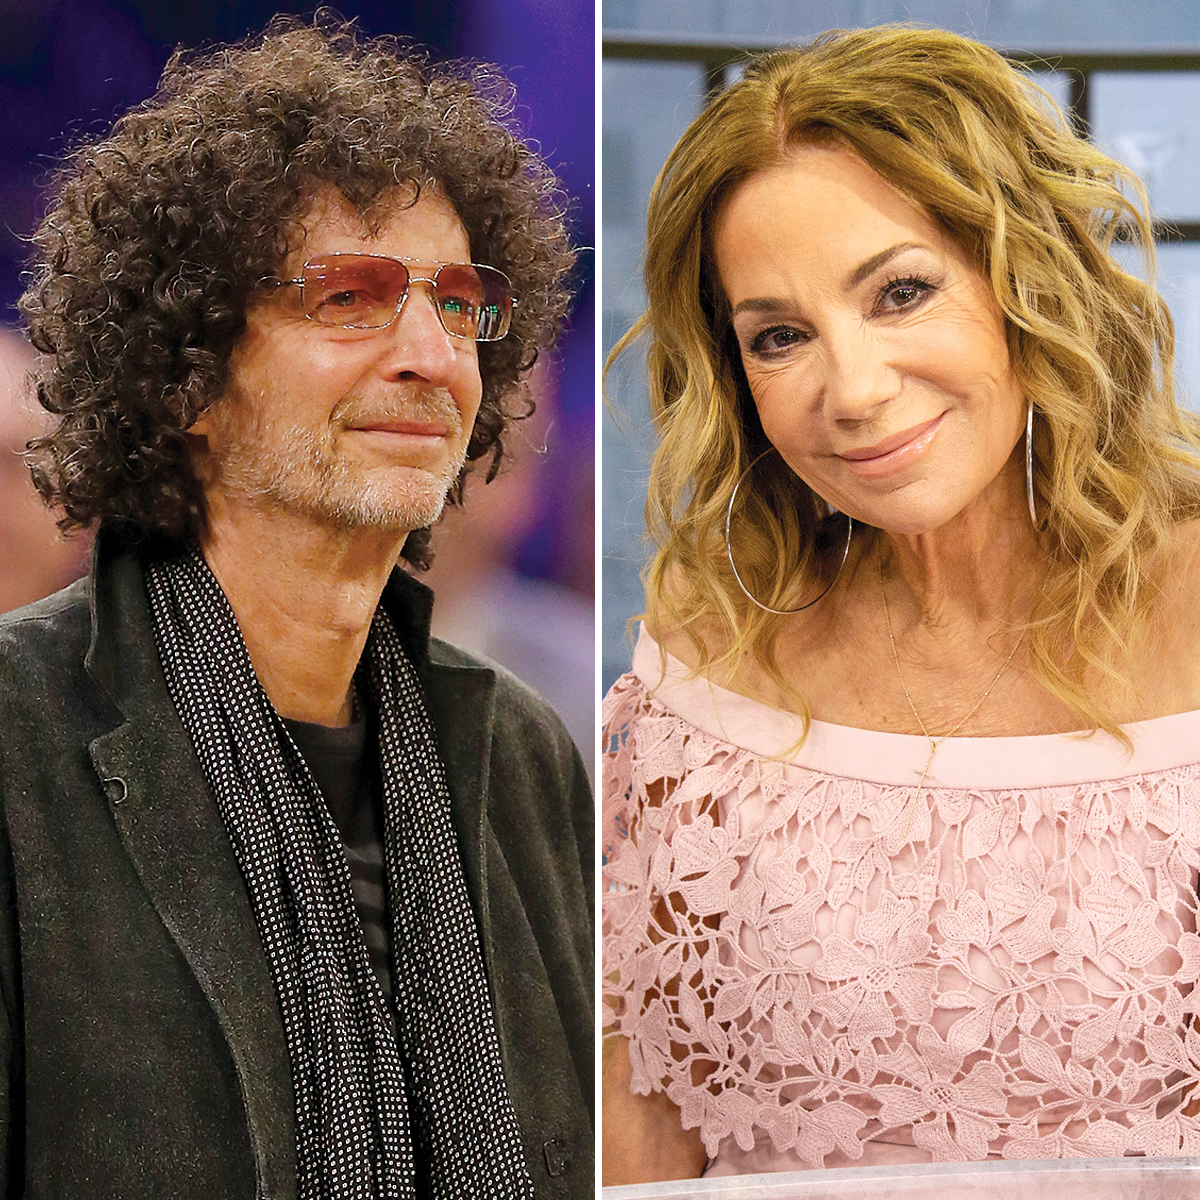 Howard-Stern-Bids-Adieu-to-Kathie-Lee-Gifford-on-'Today'-After-Squashing-Feud